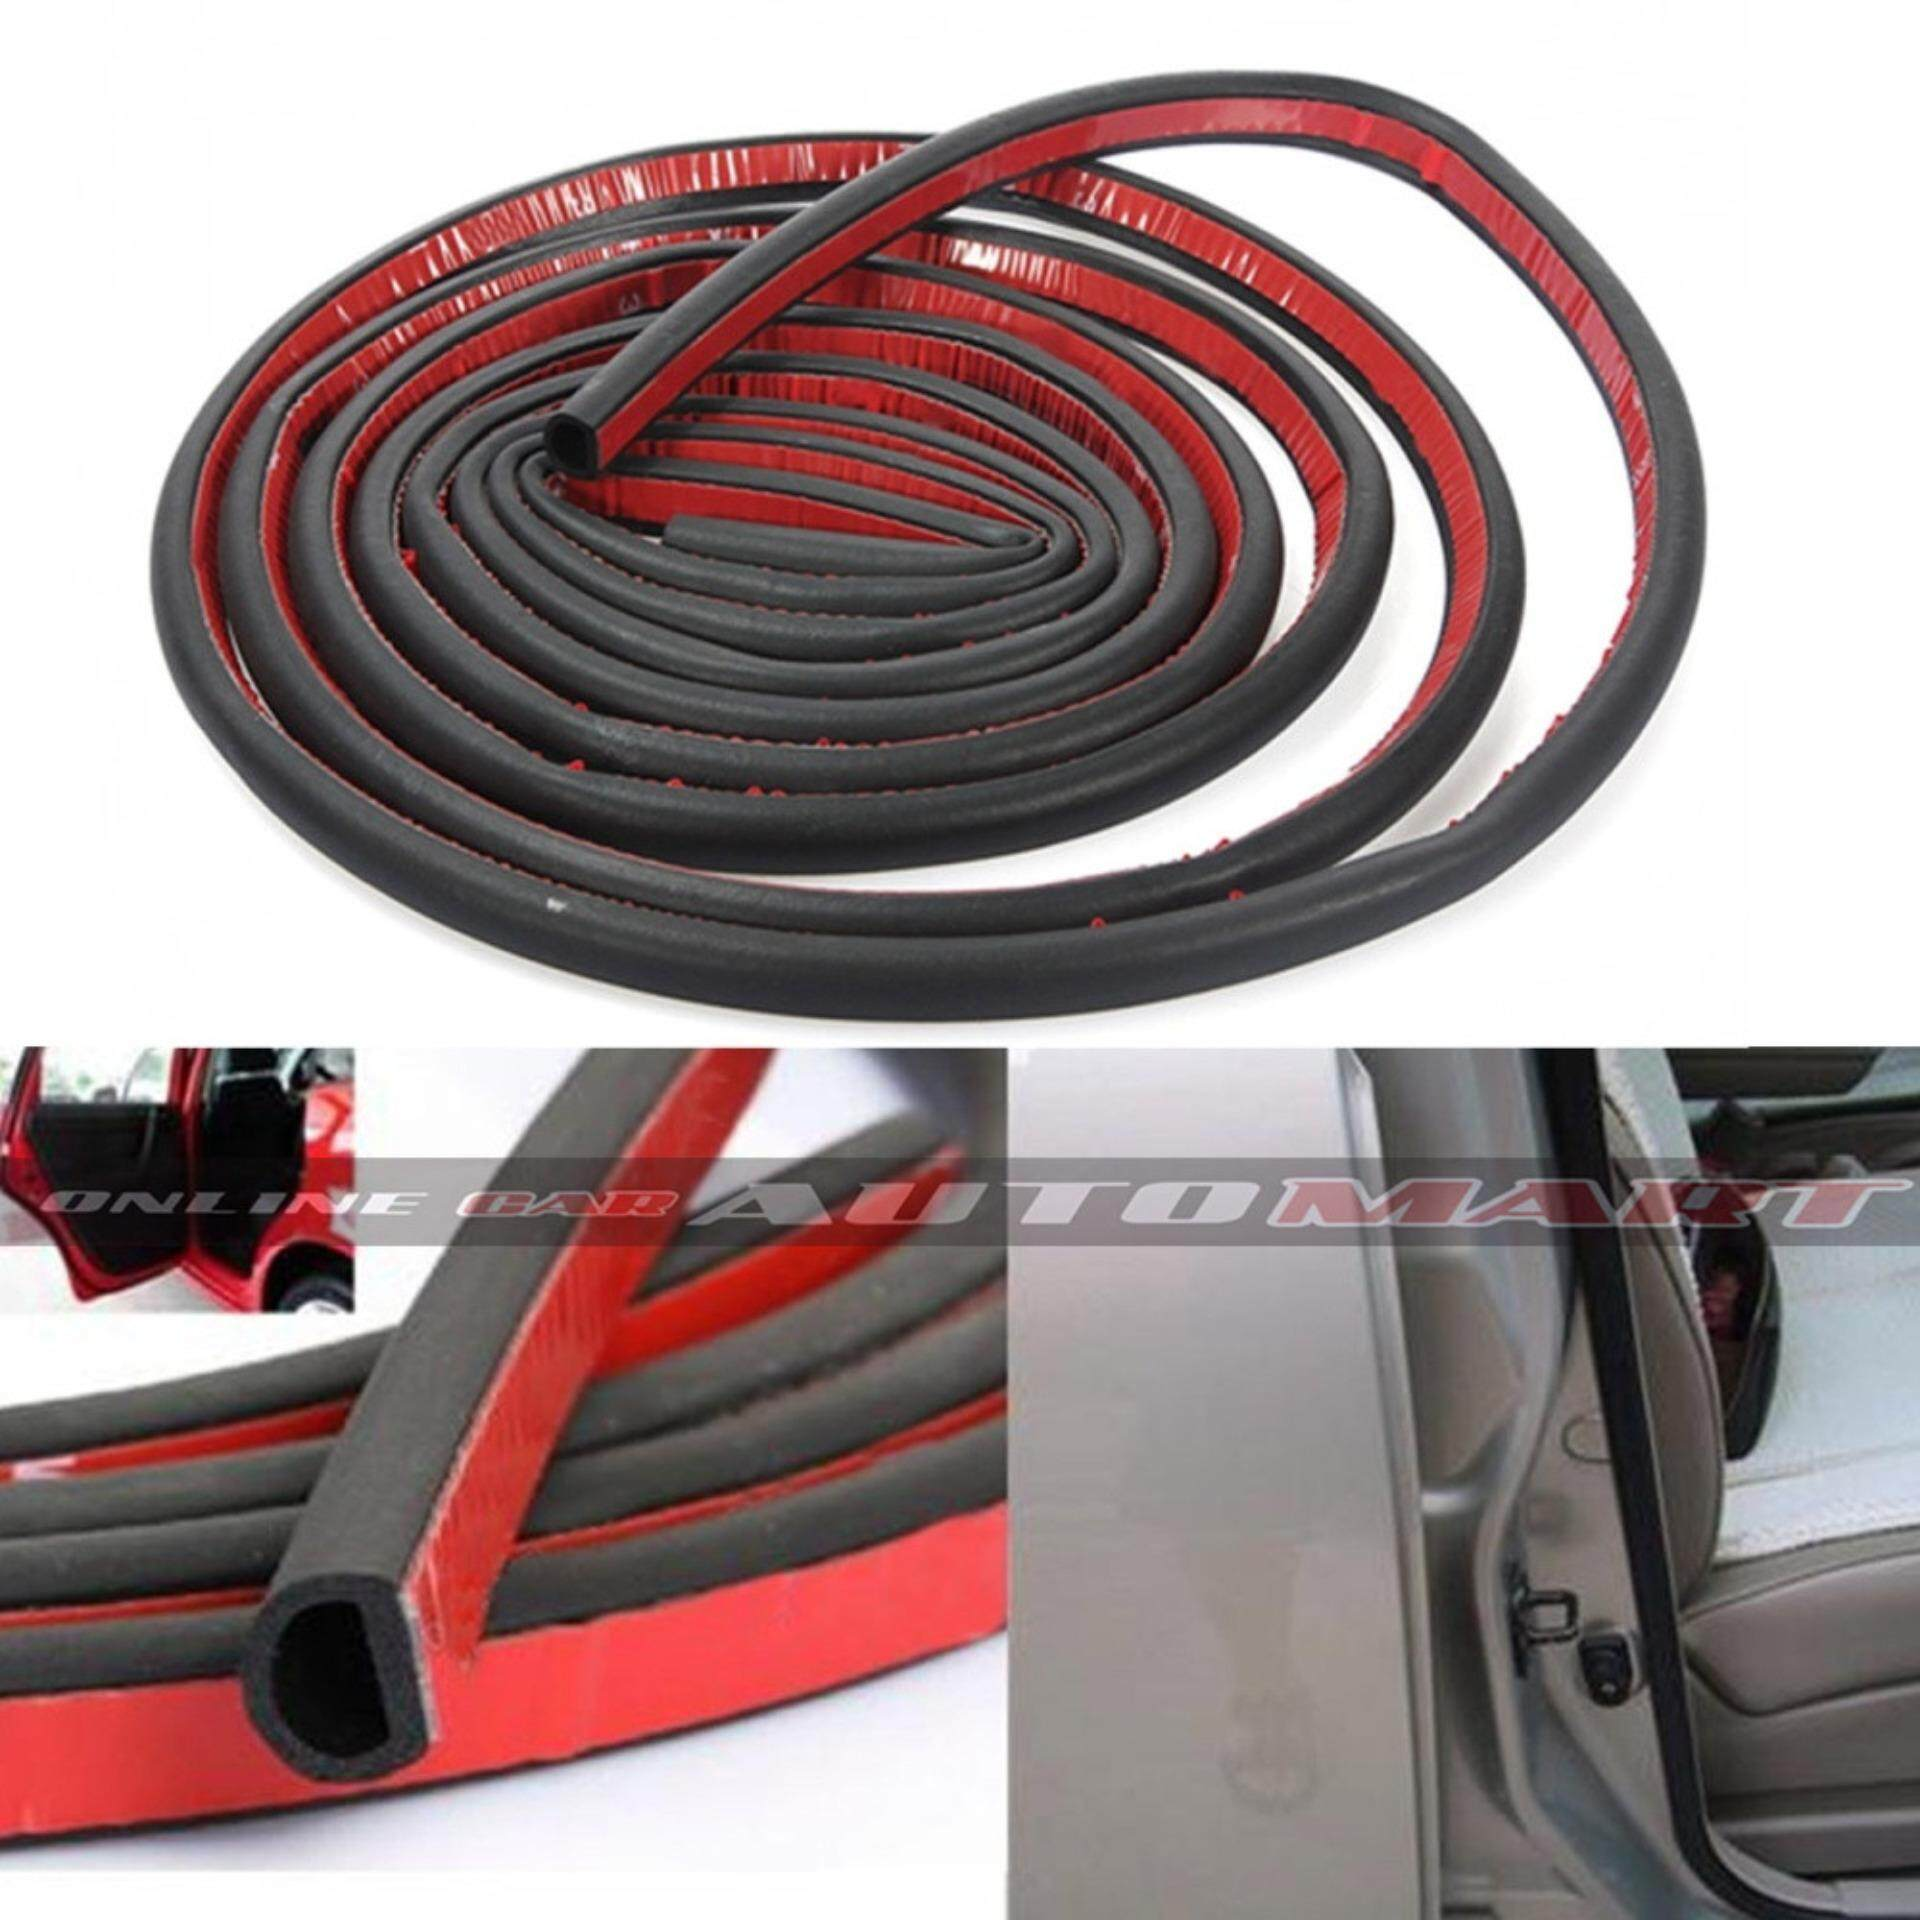 SCHEME SILENCE 4.8 Meter (Small D Shape) DIY Air Tight Slim Rubber Seal Stripe Sound & Wind Proof & Sound Proof for Car